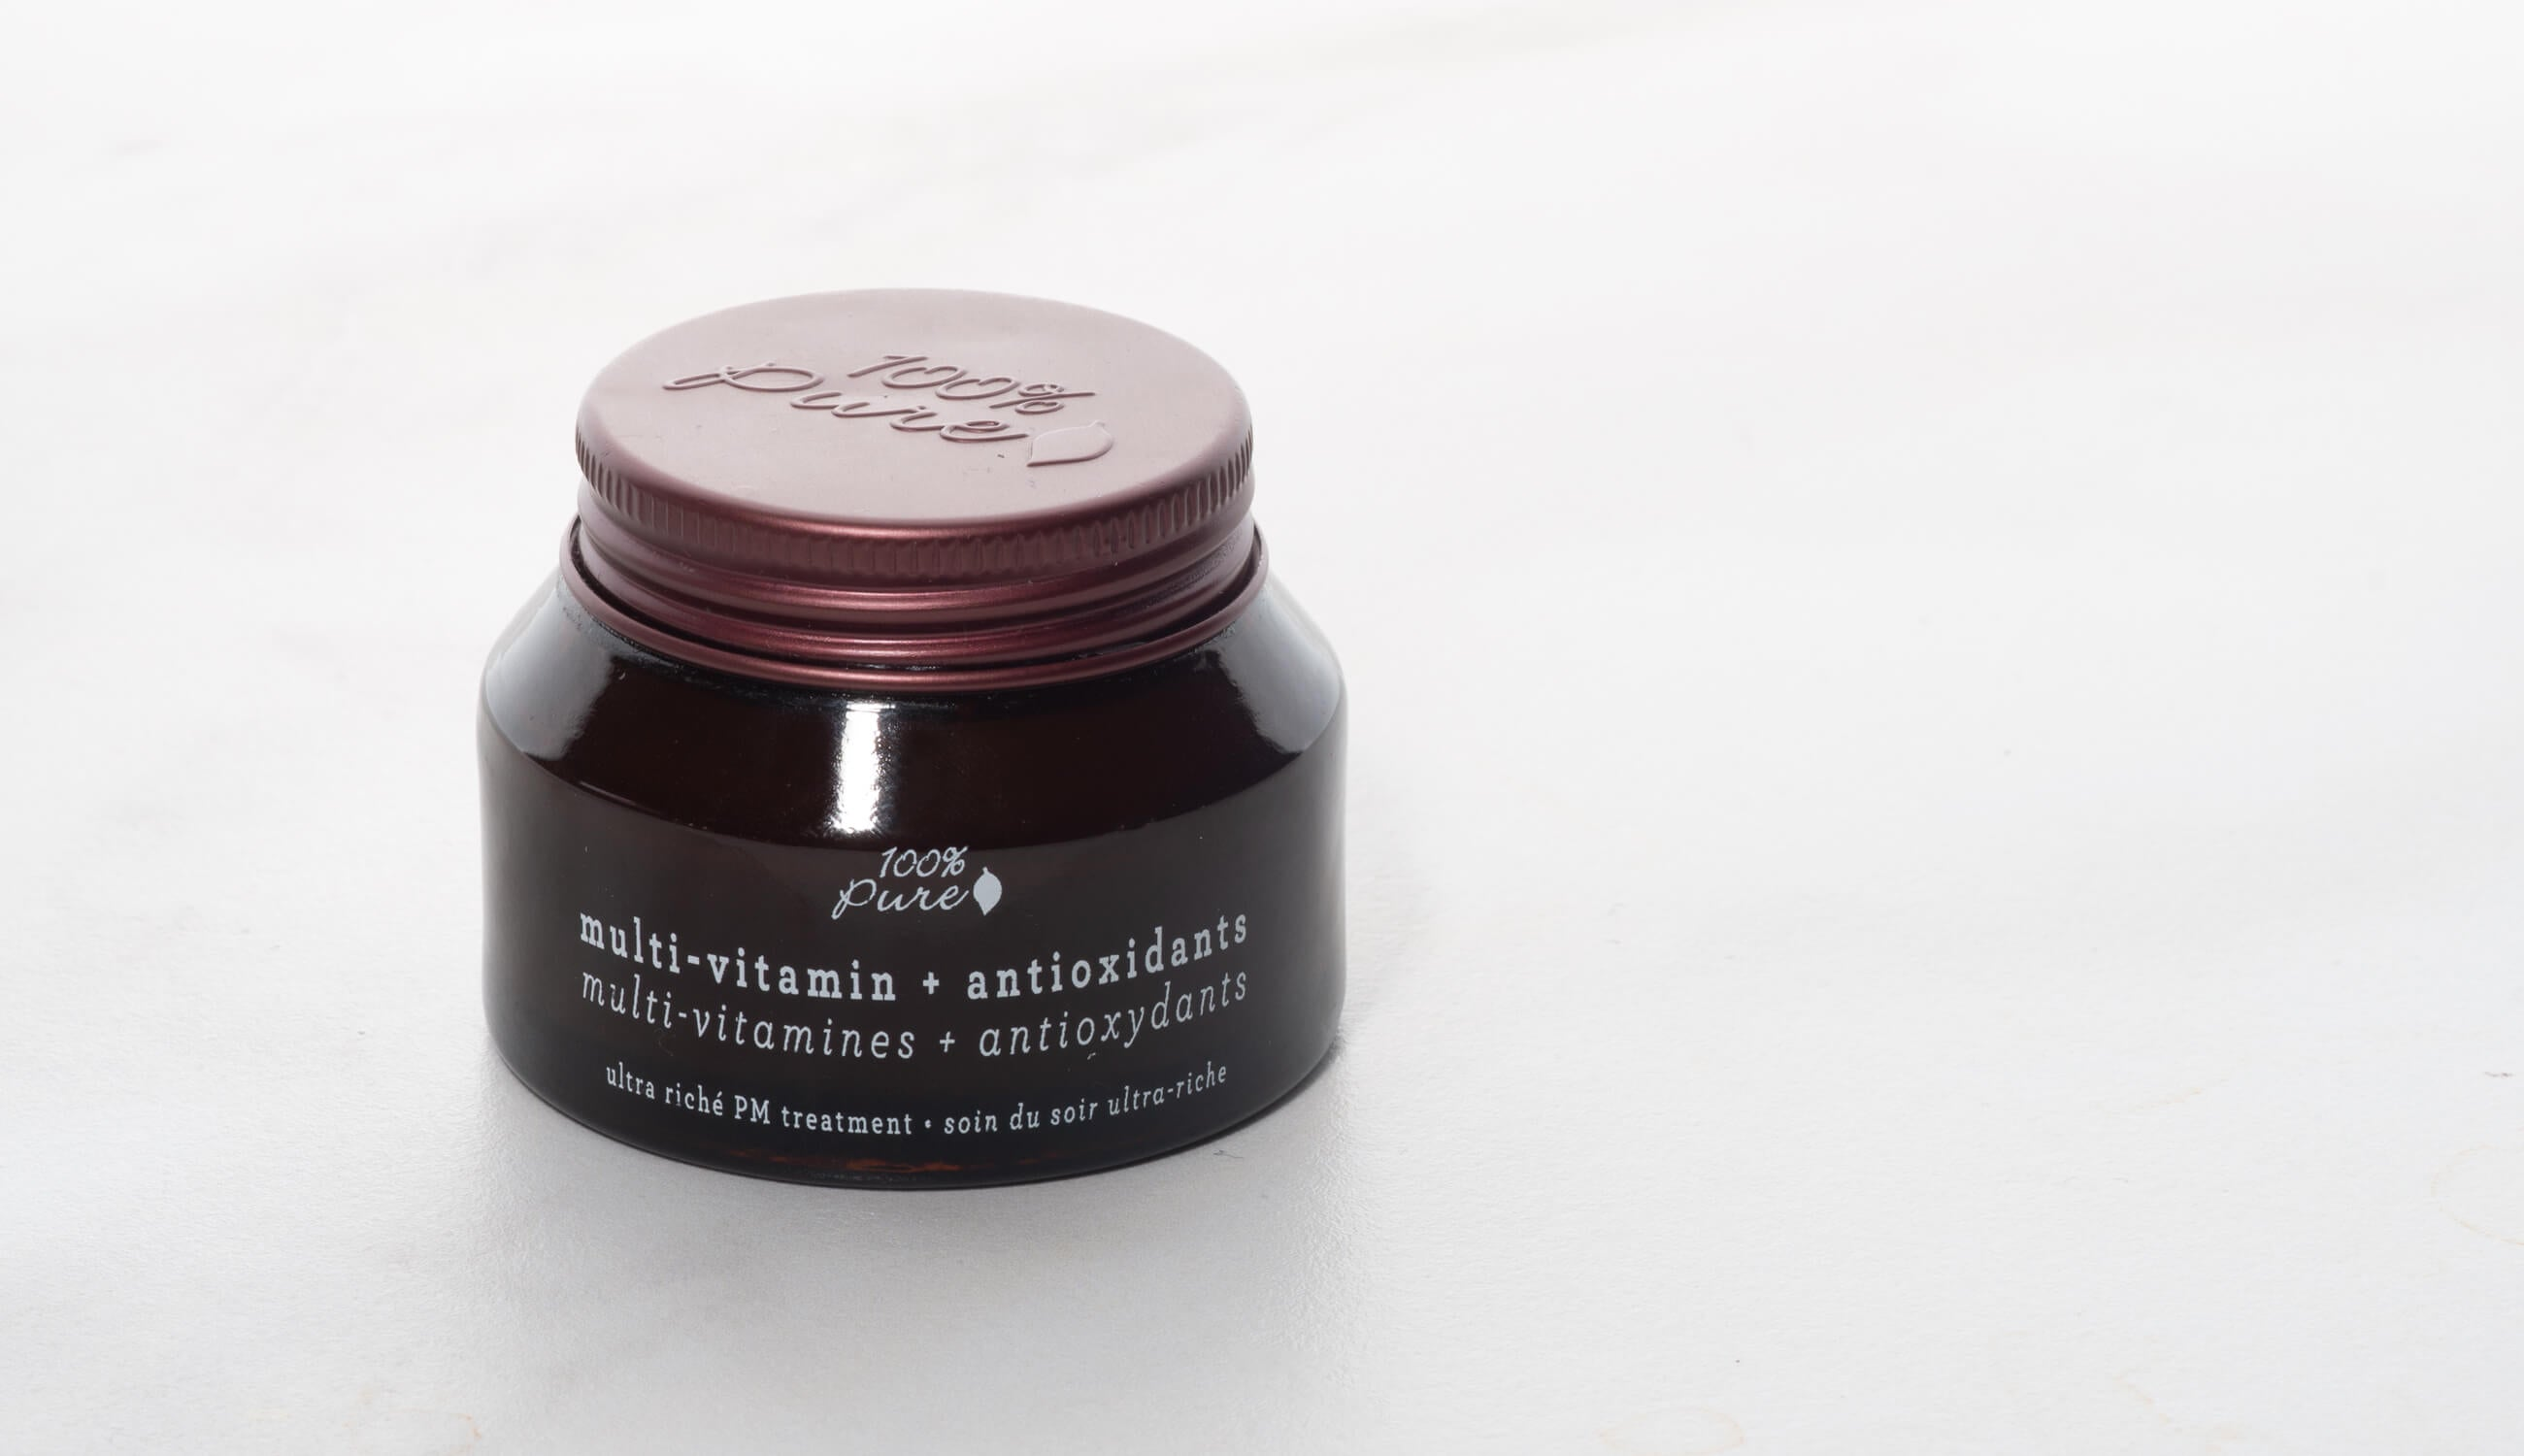 100% PURE Multi-Vitamin Antioxidants Ultra Riche PM Treatment